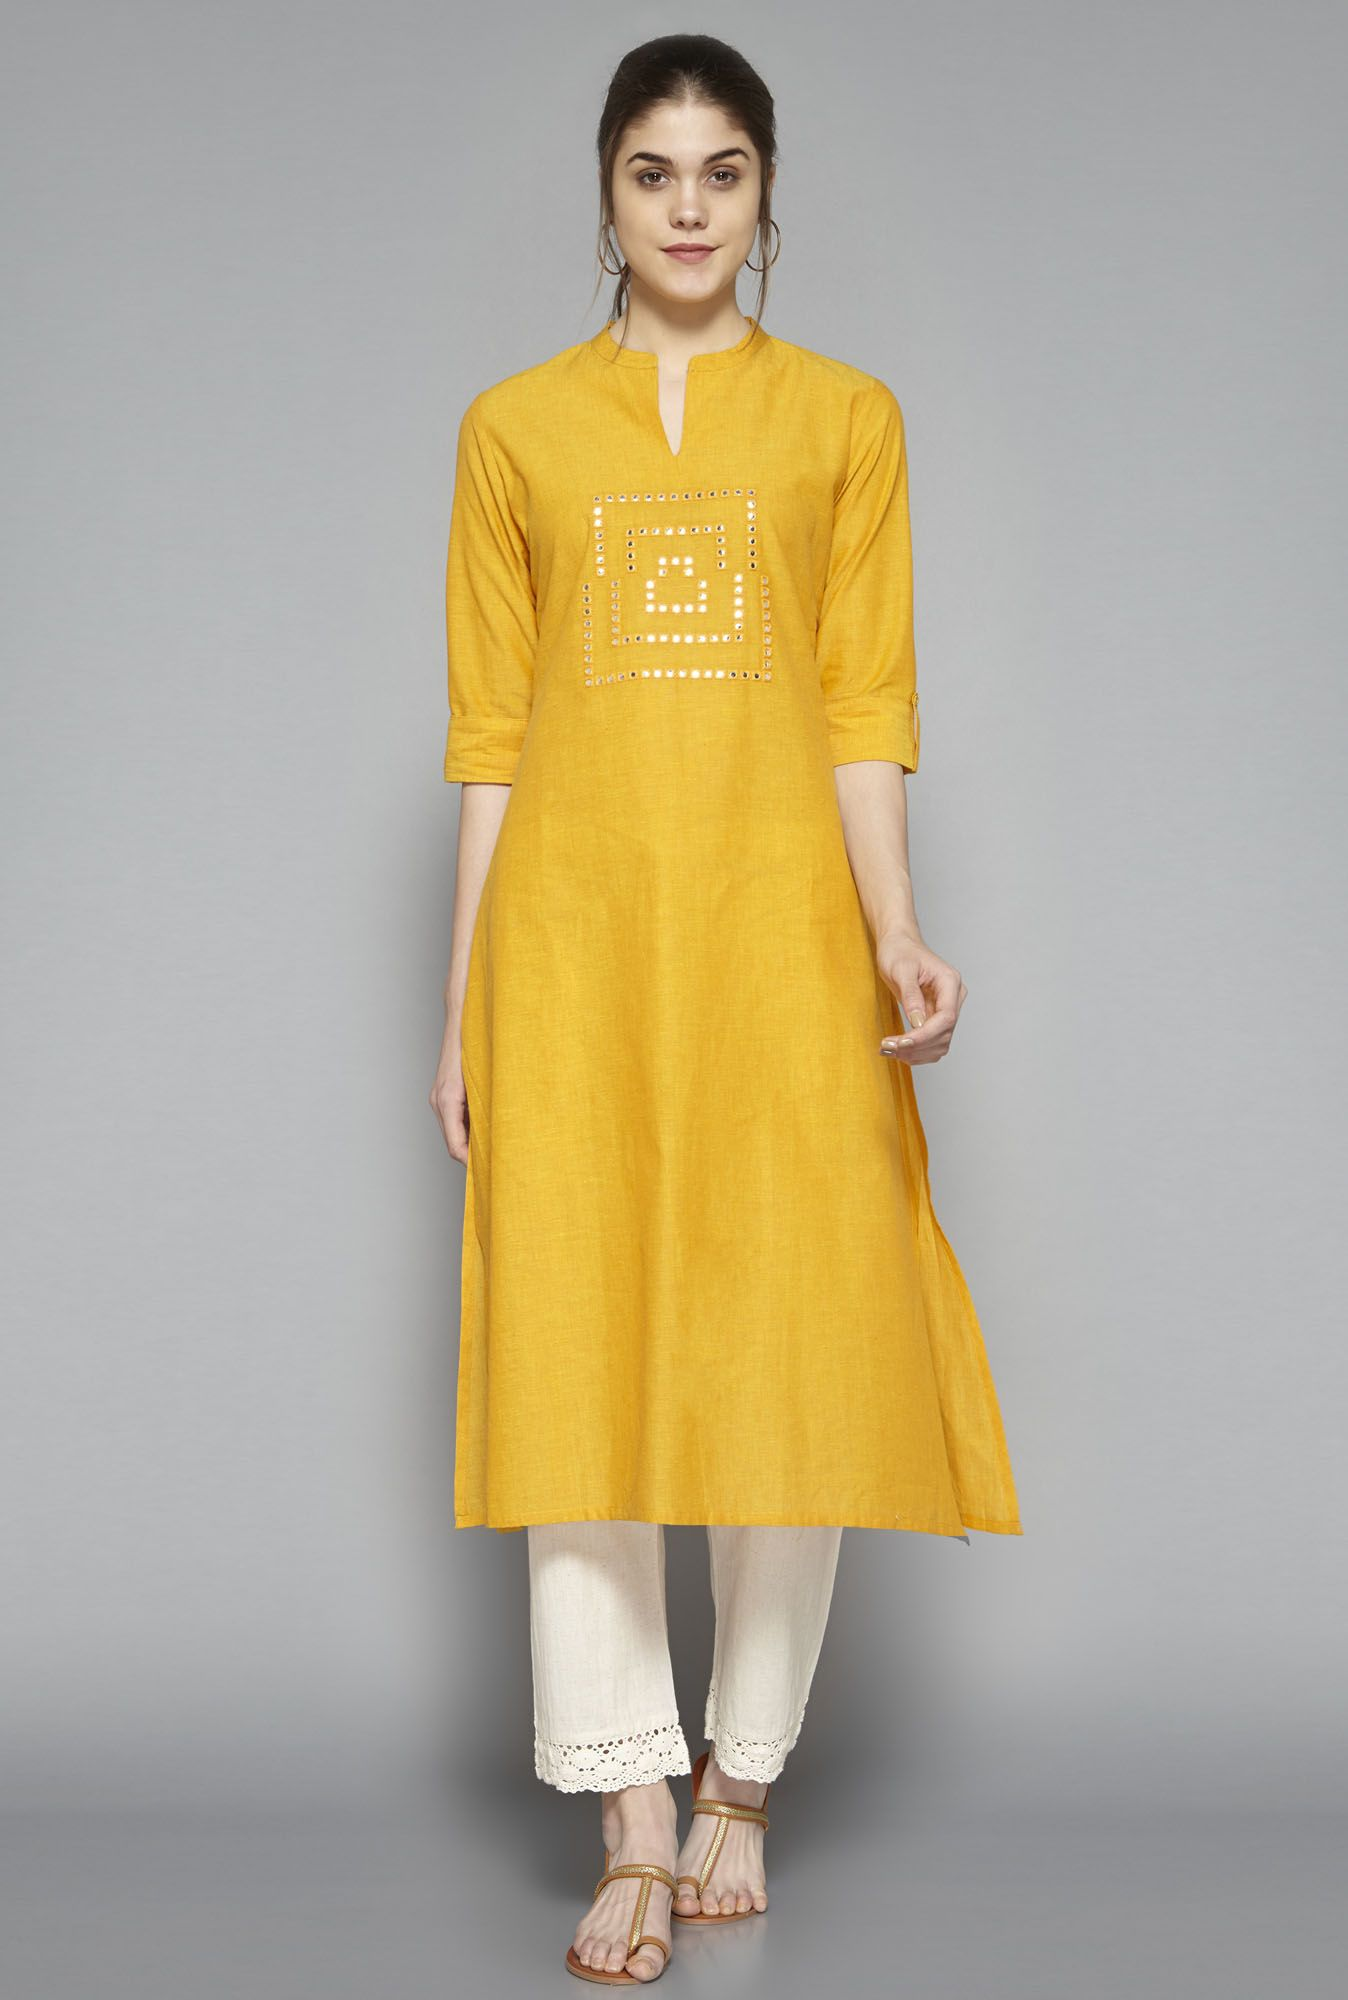 b912c246b7fe Shop Utsa by Westside Yellow Embellished Kurta for Women Online at best  price in India at Tata CLiQ. Choose your favourite Ethnic Wear Online & Get  free ...